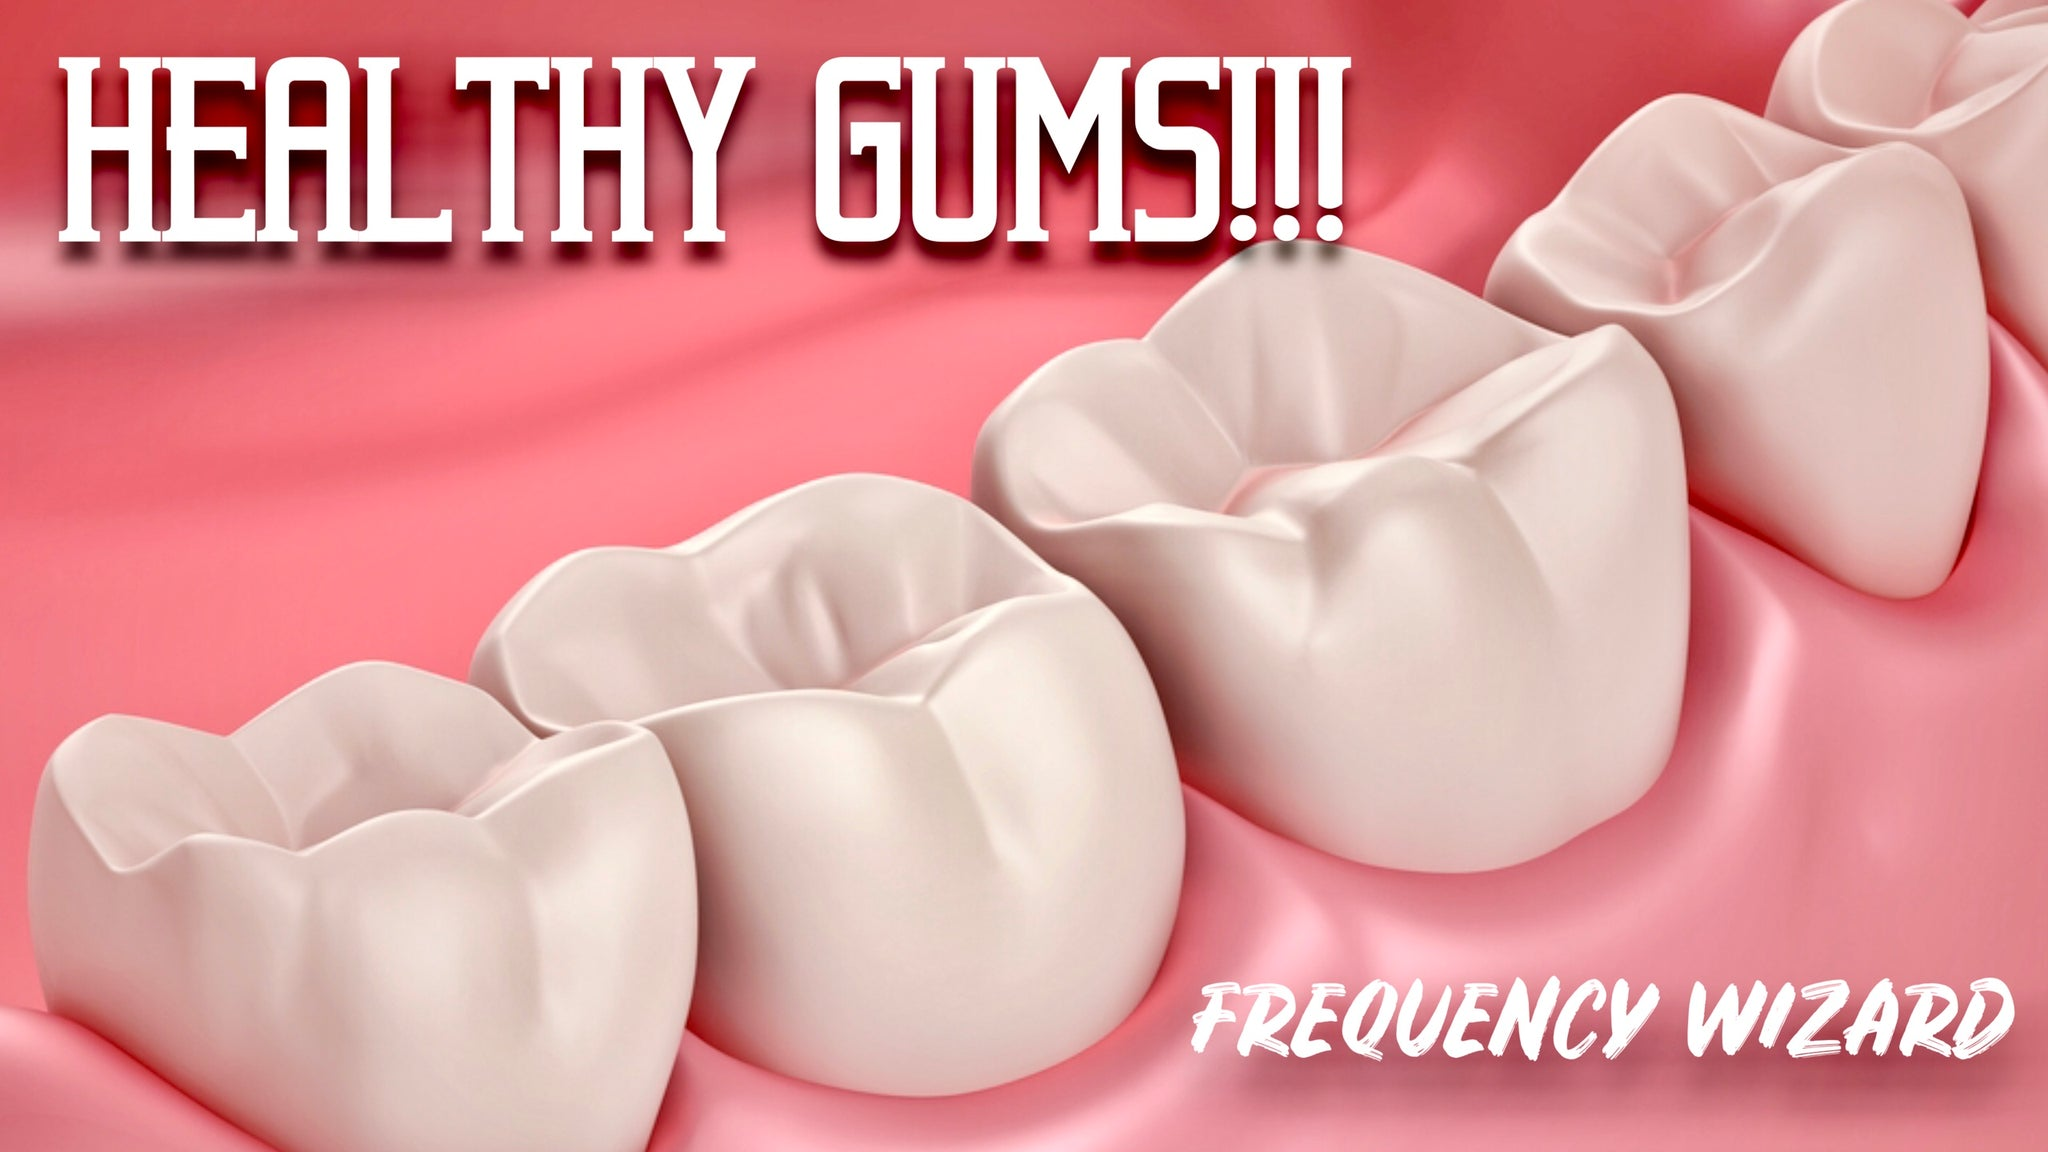 GET HEALTHY GUMS FAST! PREVENT / ELIMINATE GINGAVITIS, PERIODONTITIS, BLEEDING, SWELLING AND SENSITIVITY! SUBLIMINAL FREQUENCY WIZARD